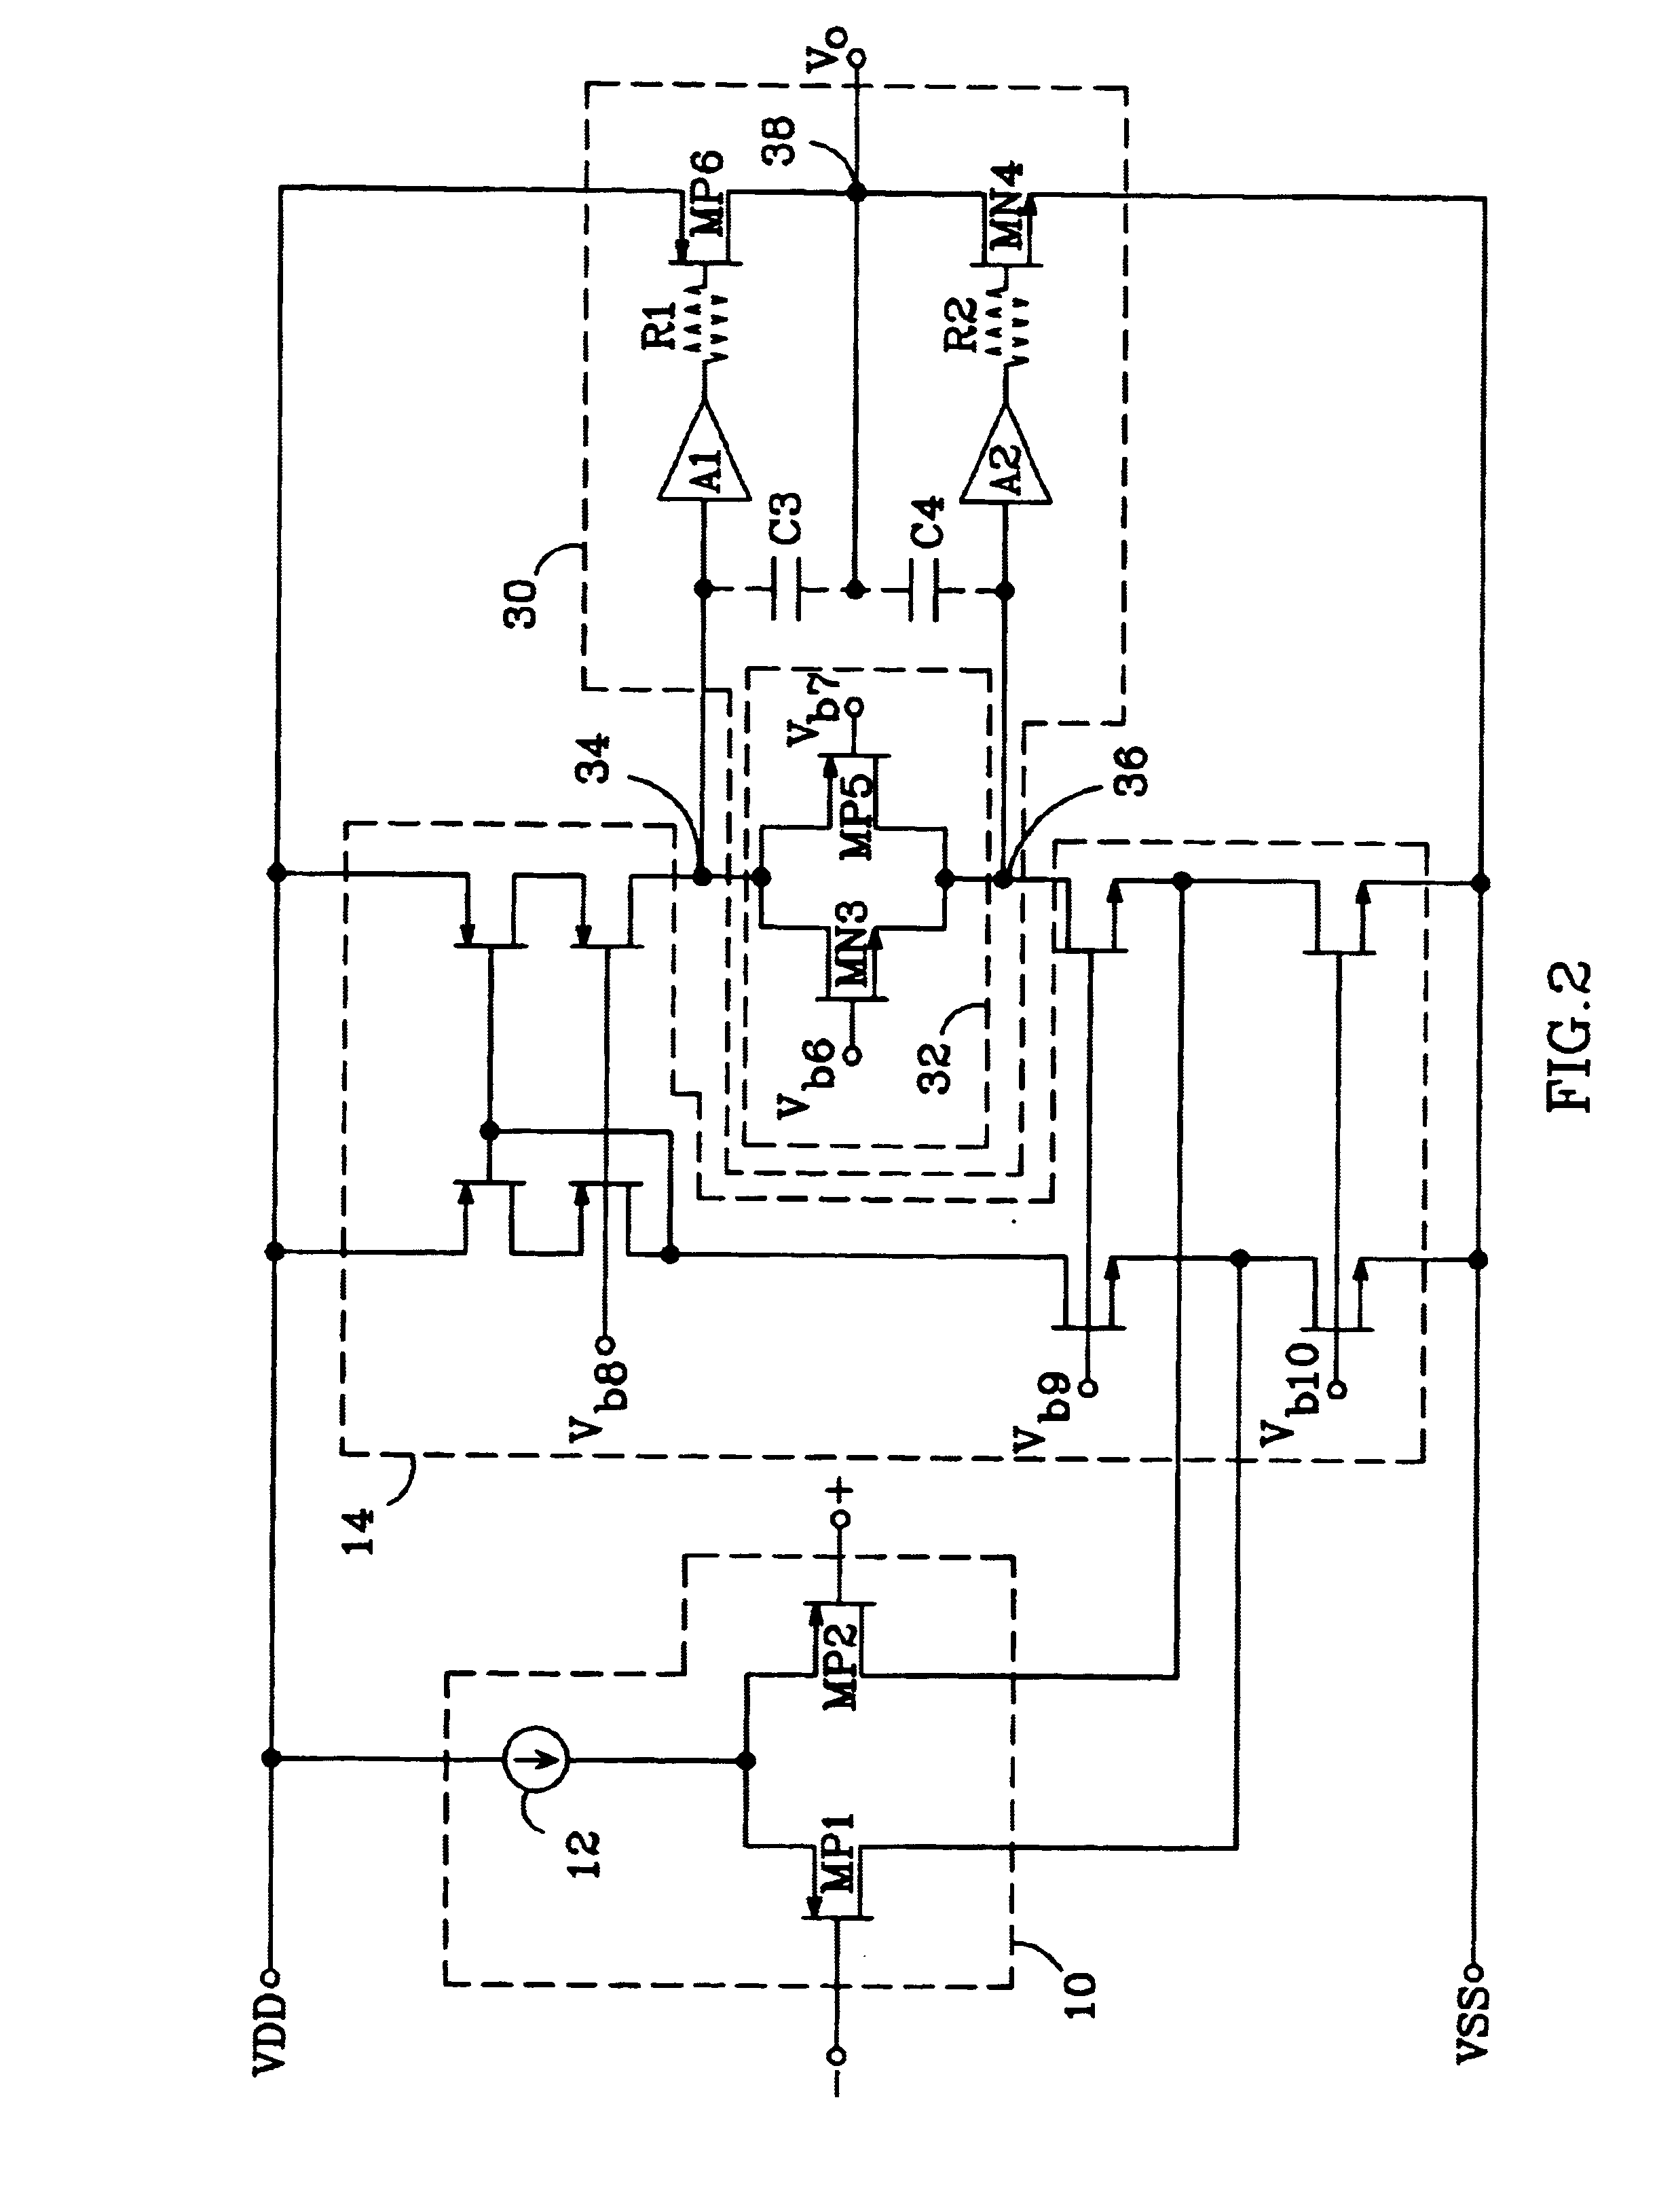 patent us6714076 - buffer circuit for op amp output stage